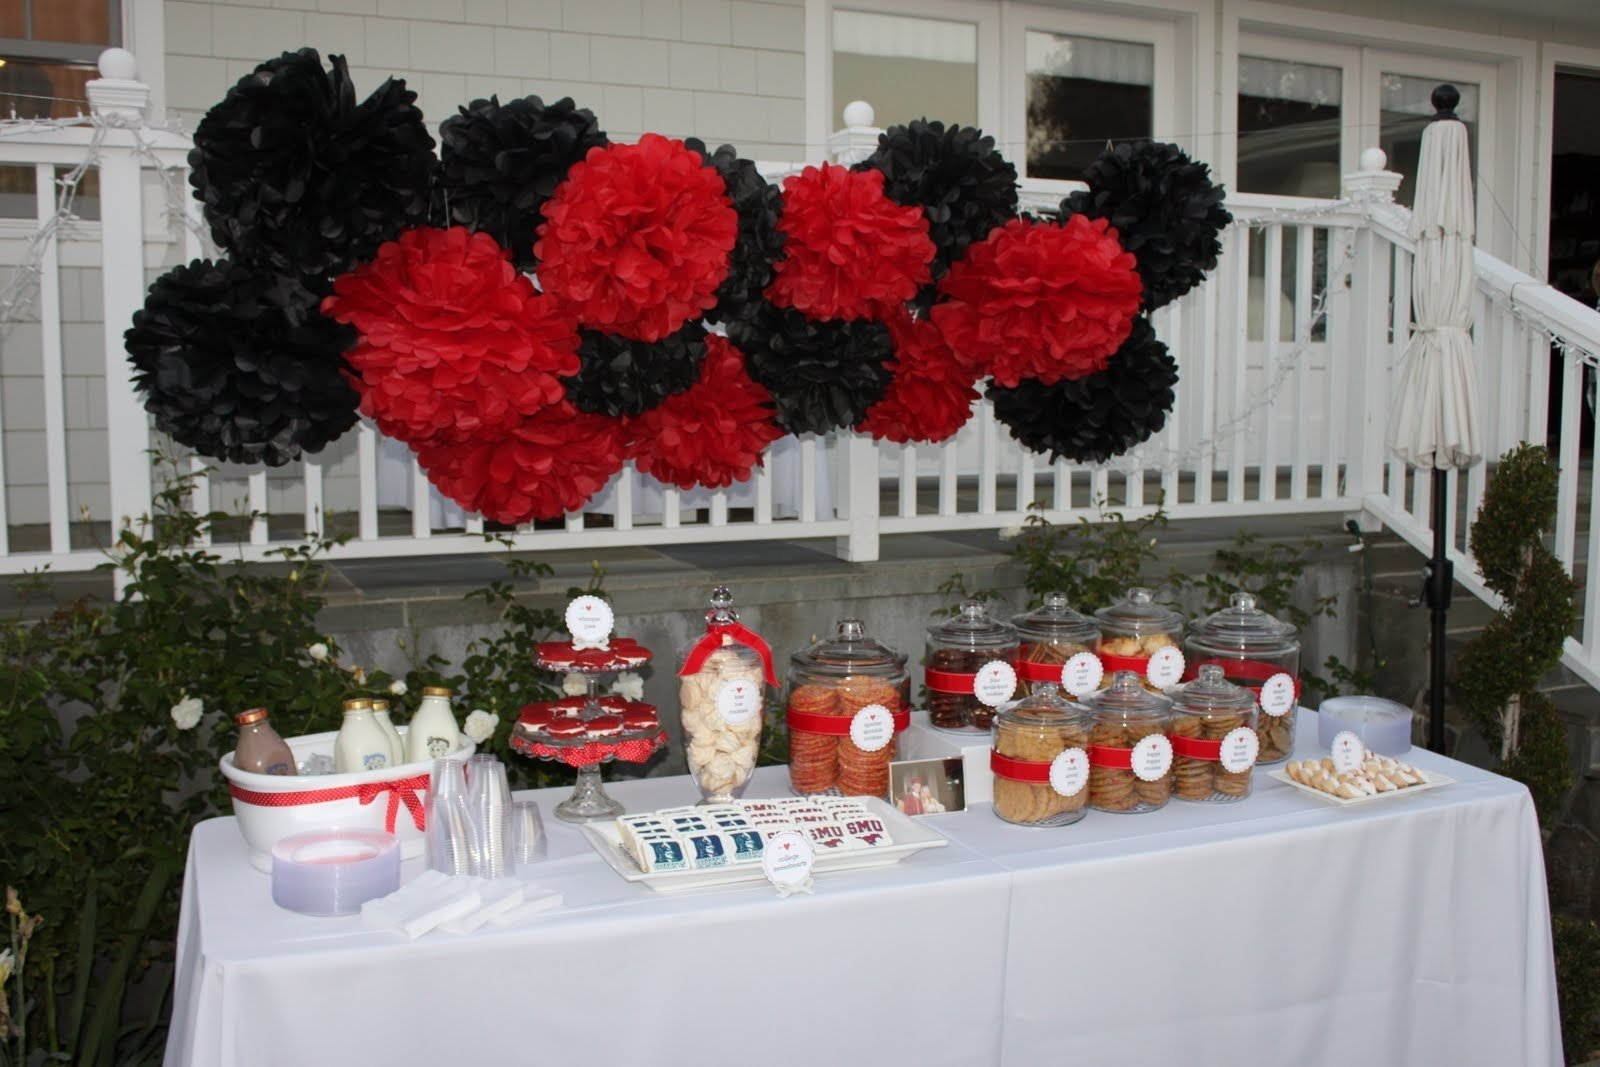 10 Spectacular Red And White Party Ideas nicoles guide to style engagement party decor black and red party 2021